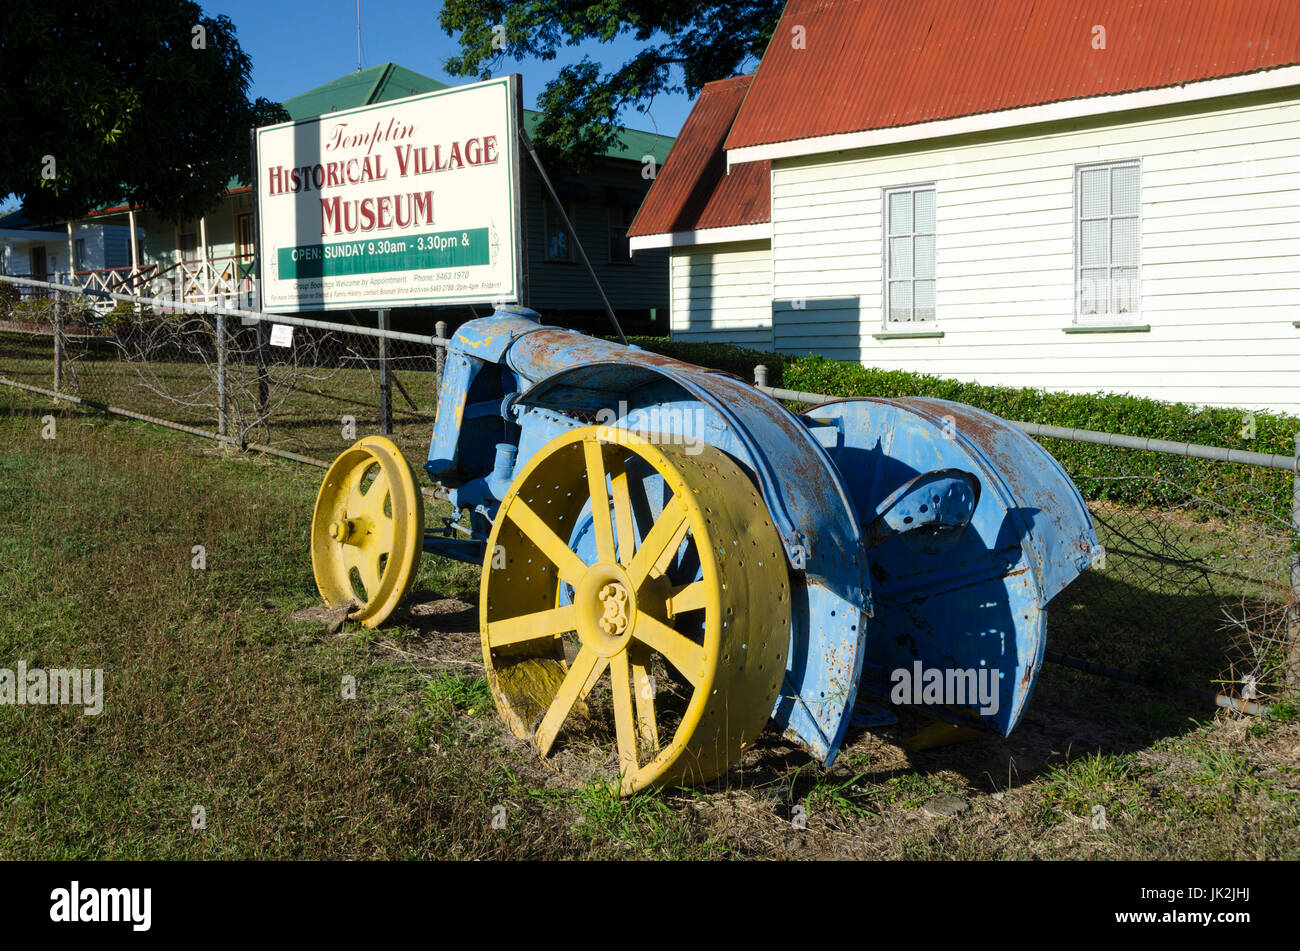 Old Fordson tractor, Templin Historical Village Museum, Boonah, Queensland, Australia - Stock Image